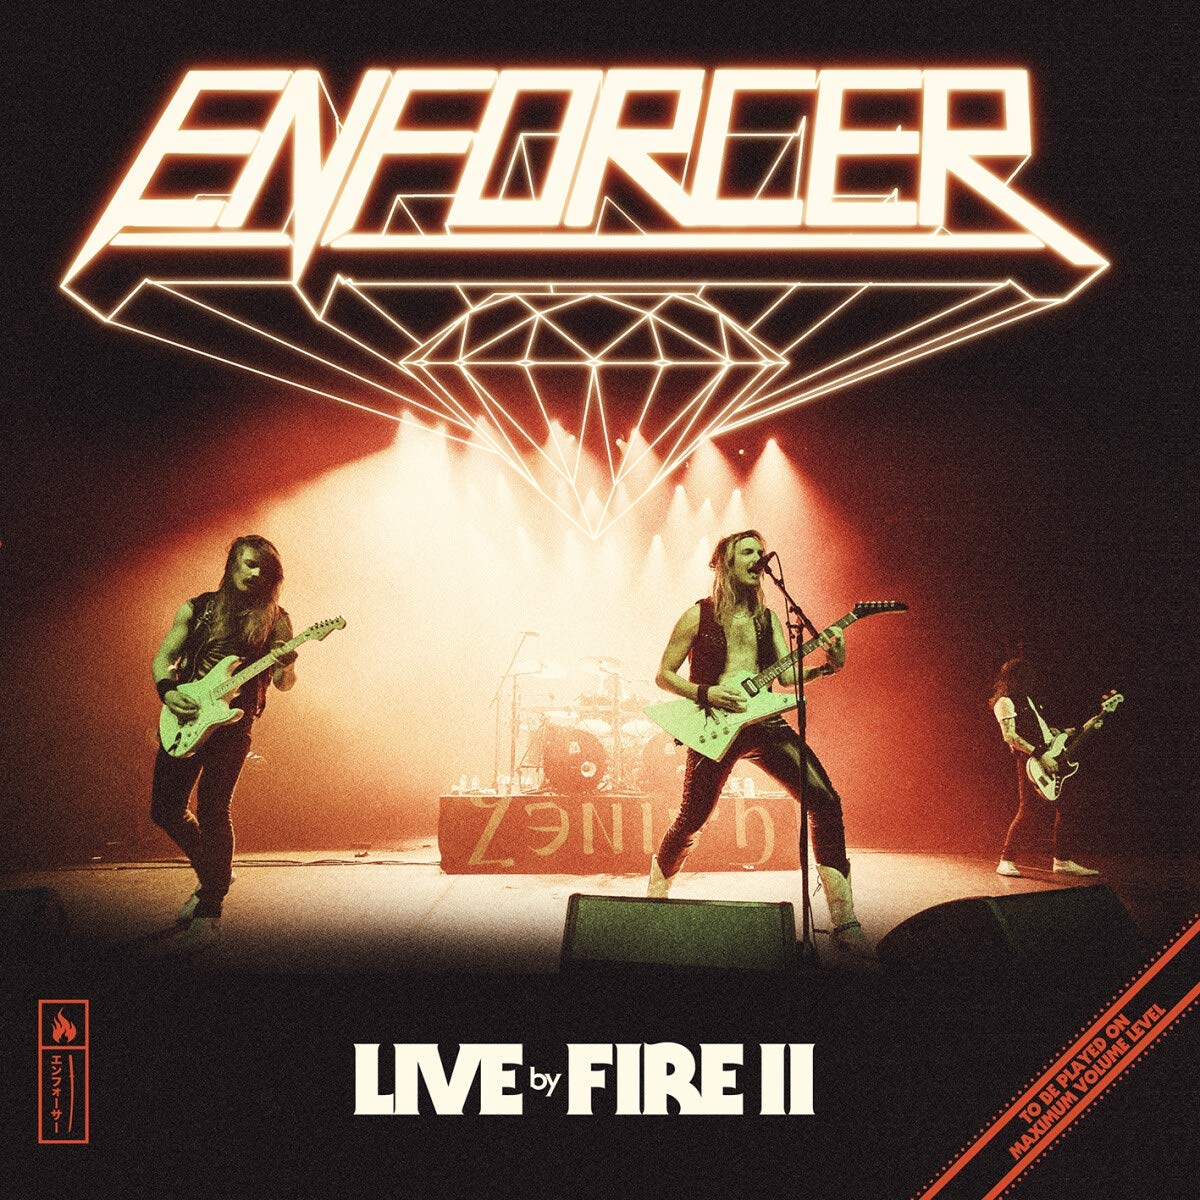 Enforcer - Live by Fire II (2021) [FLAC] Download